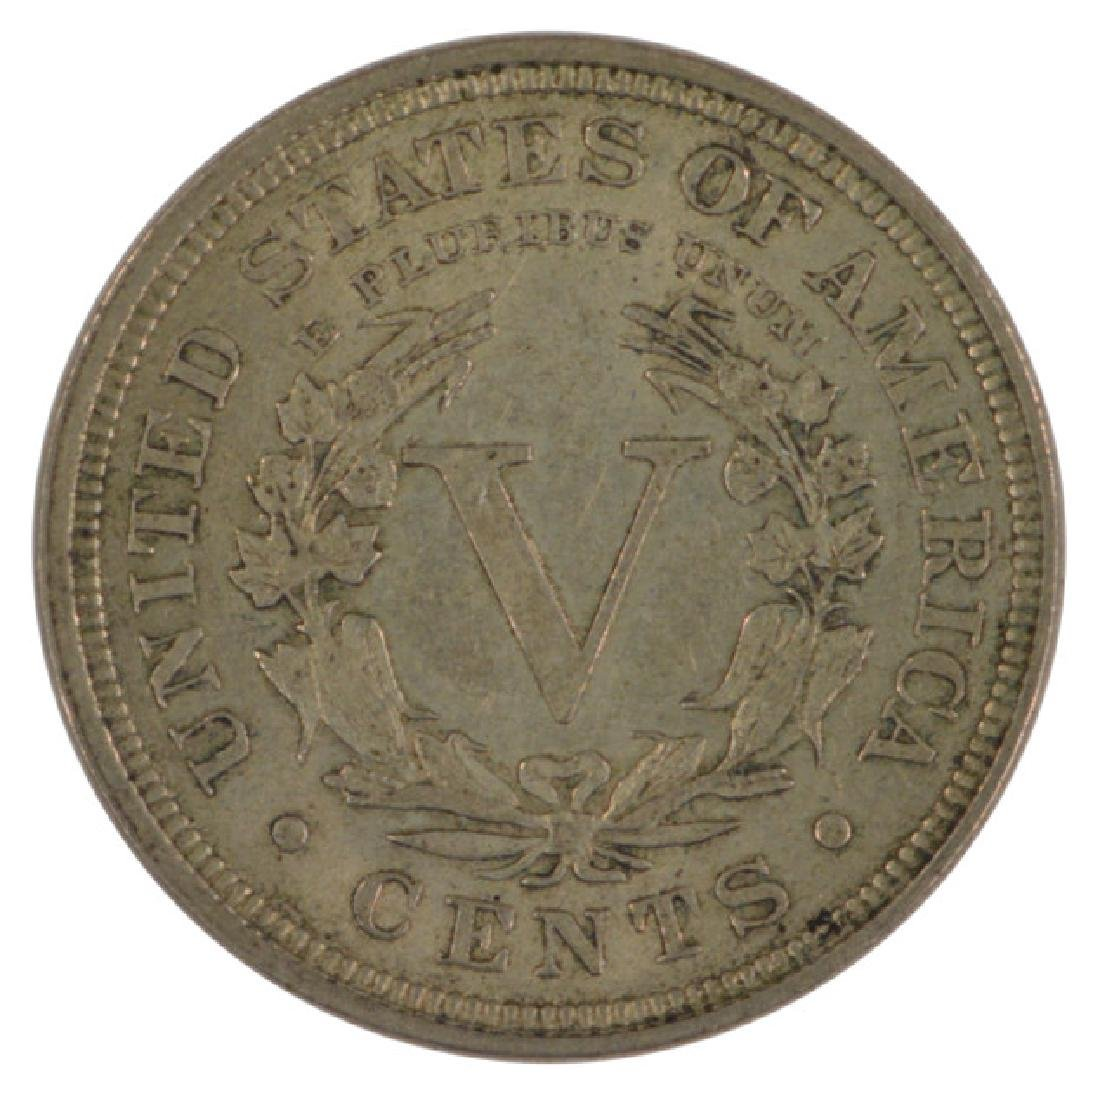 1899 Liberty Nickel Coin - 2